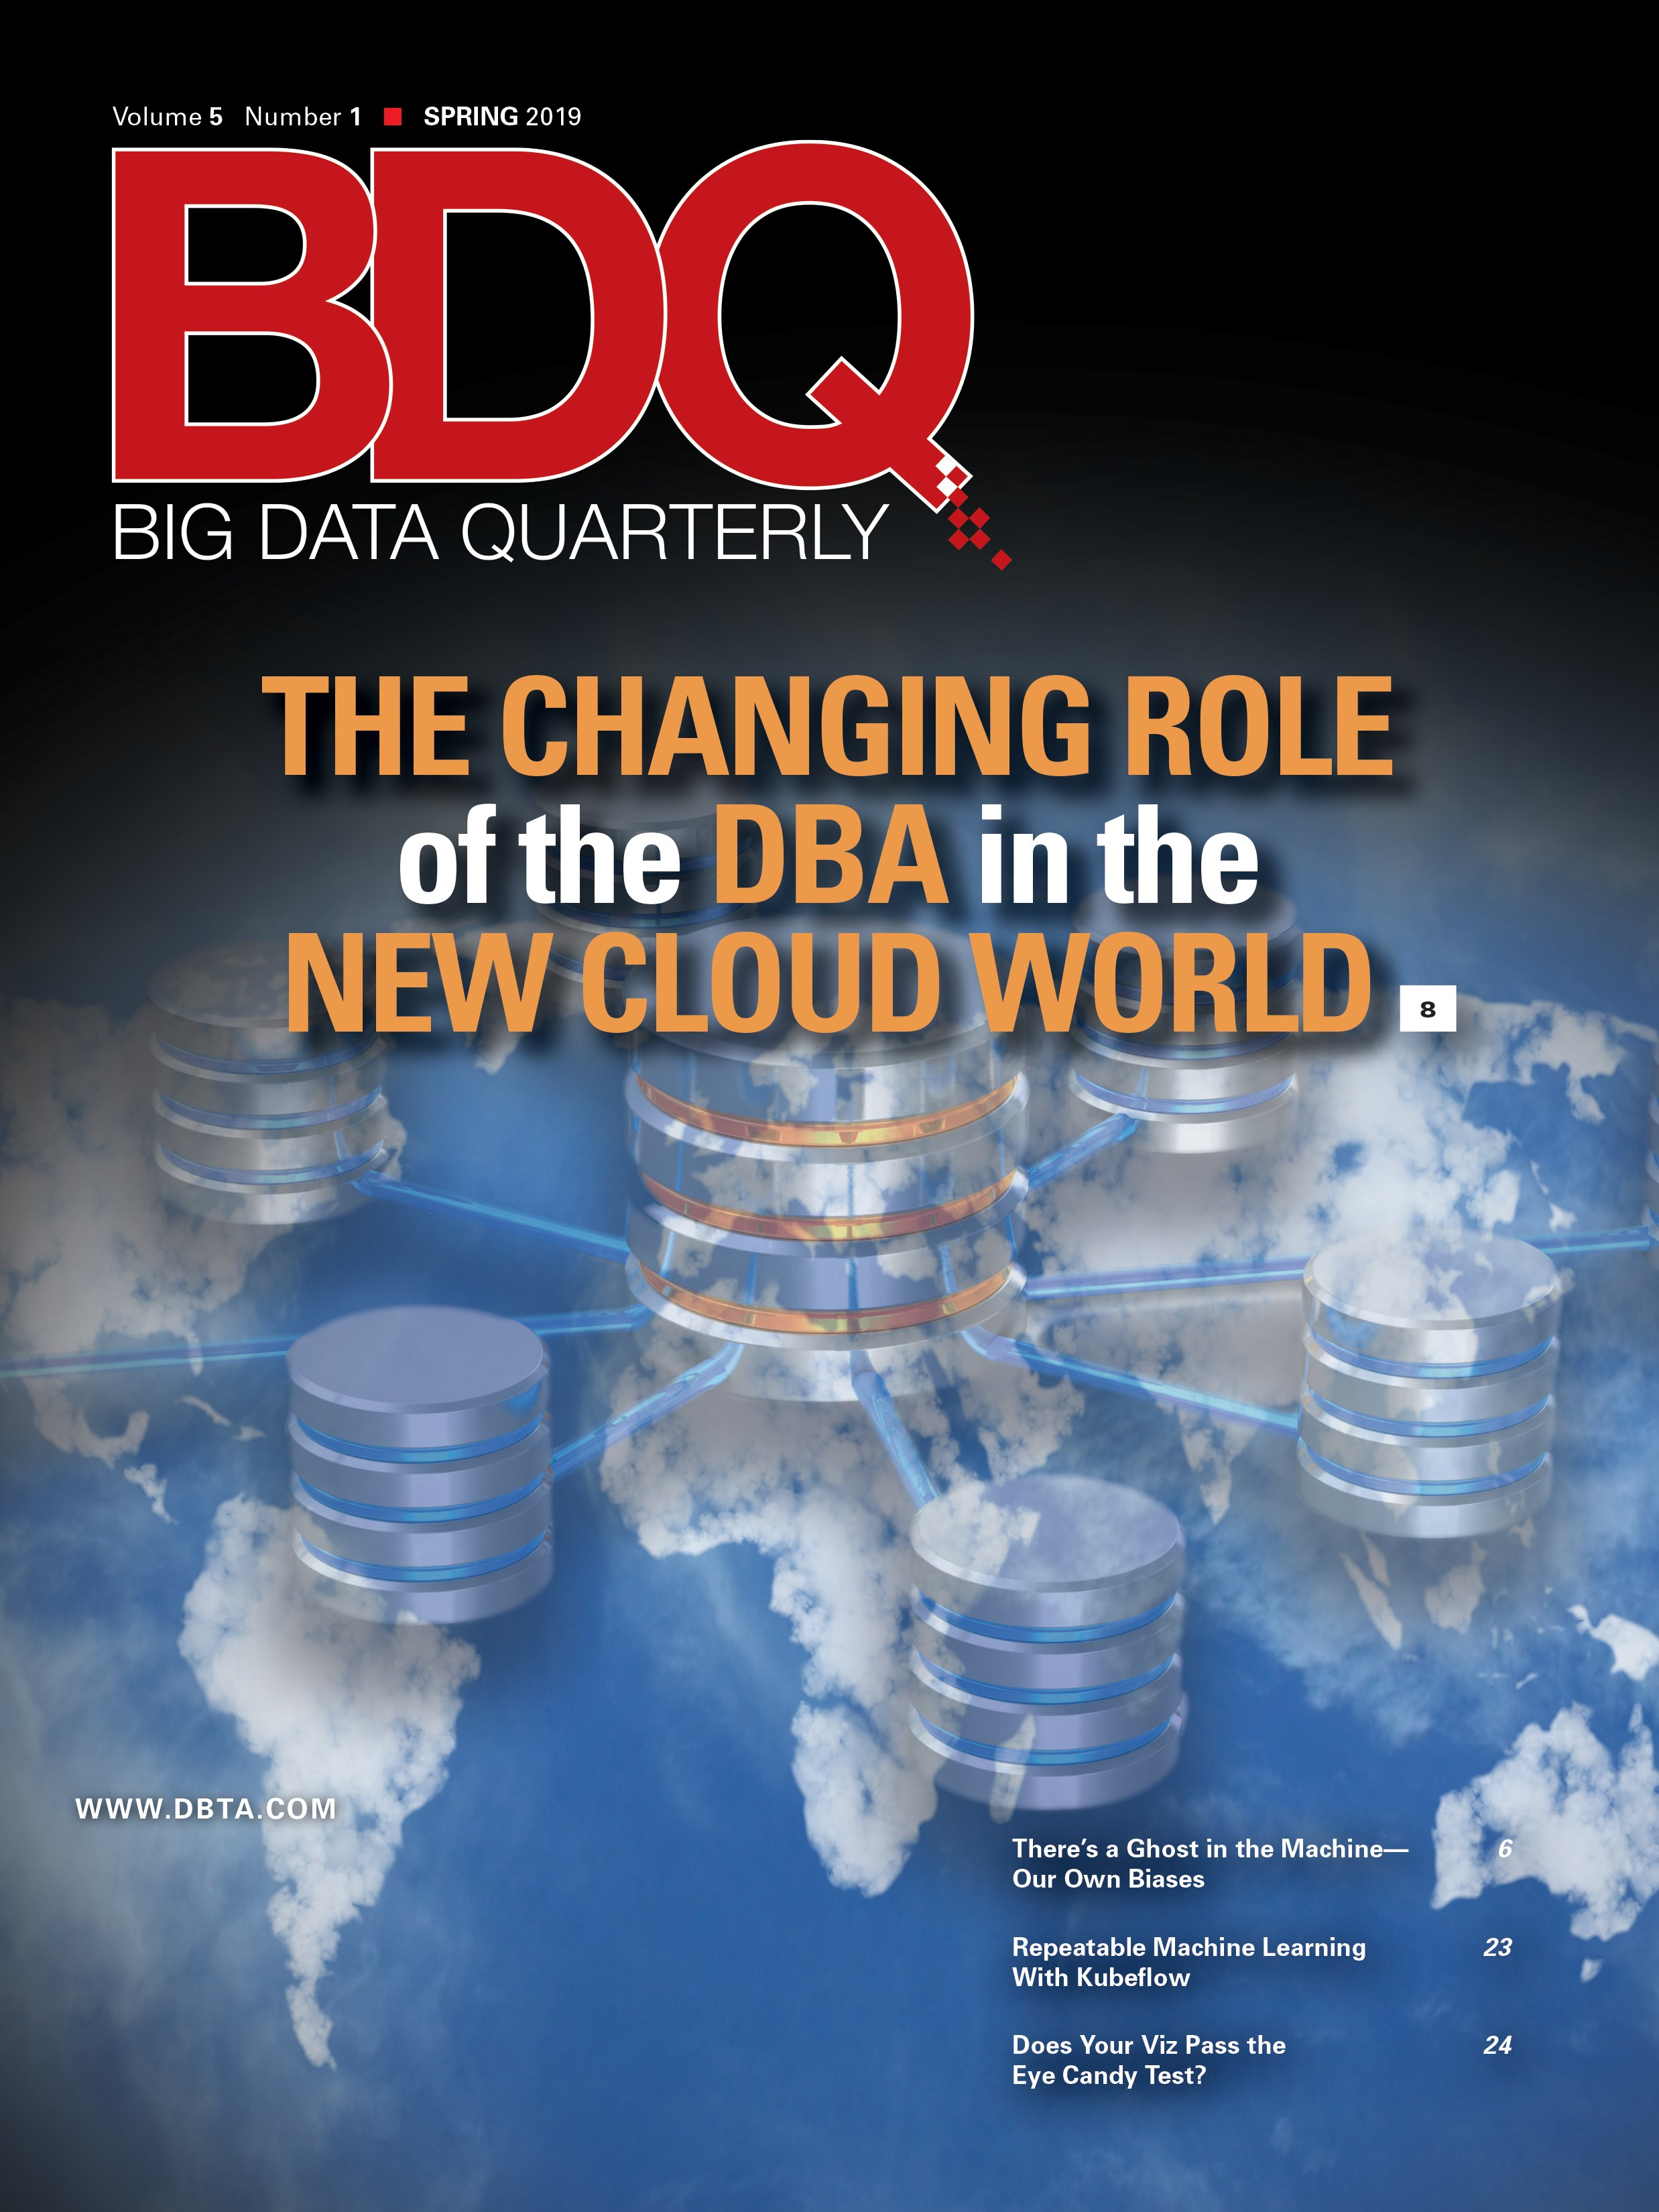 Big Data Quarterly: Spring 2019 Issue - Database Trends and